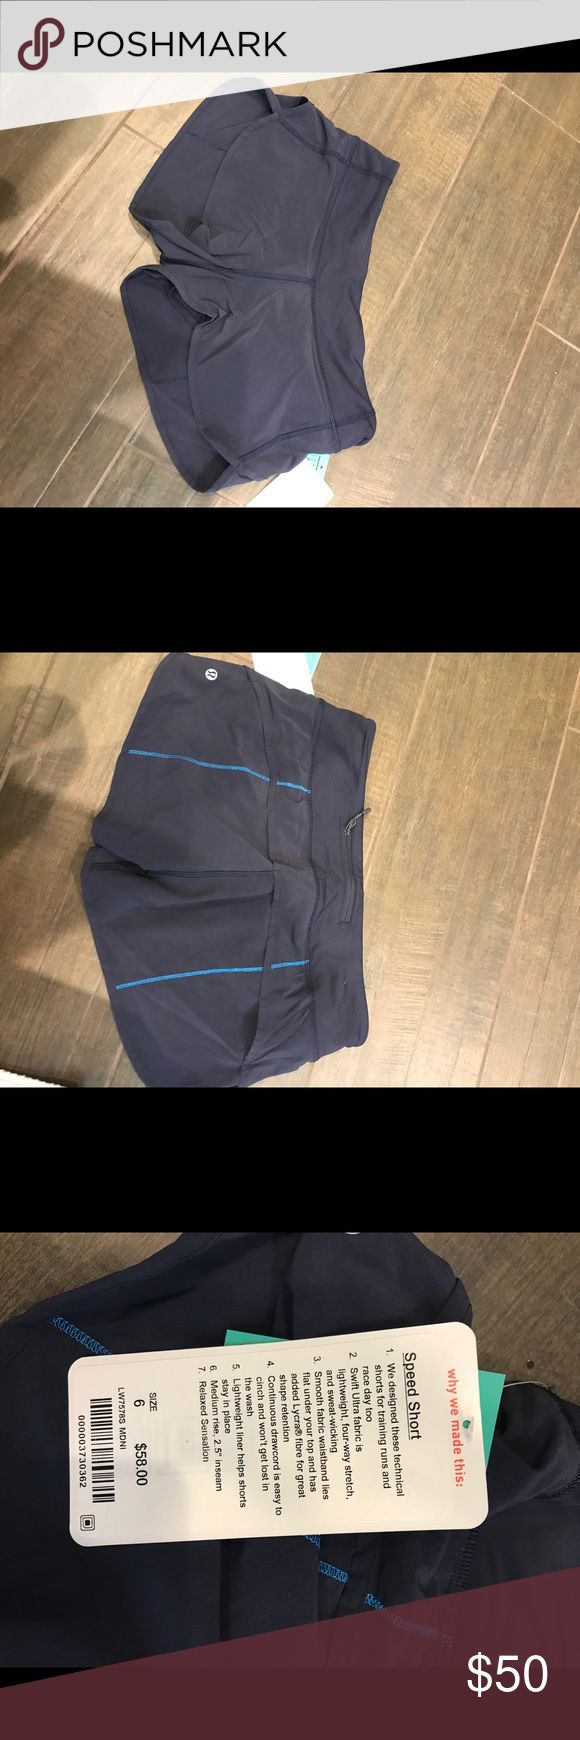 Lululemon speed shorts size 6 New with tags lululemon speed shorts lululemon athletica Shorts